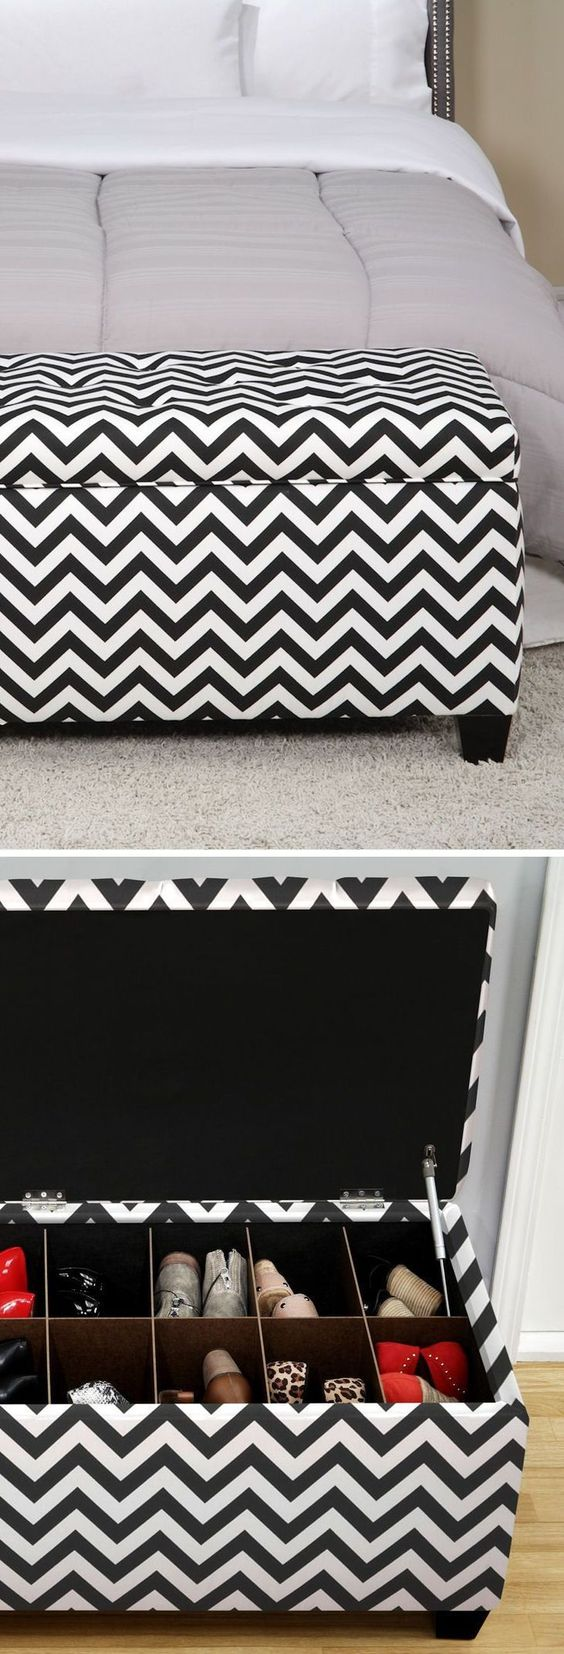 Use a storage ottoman at the end of the bed to store shoes